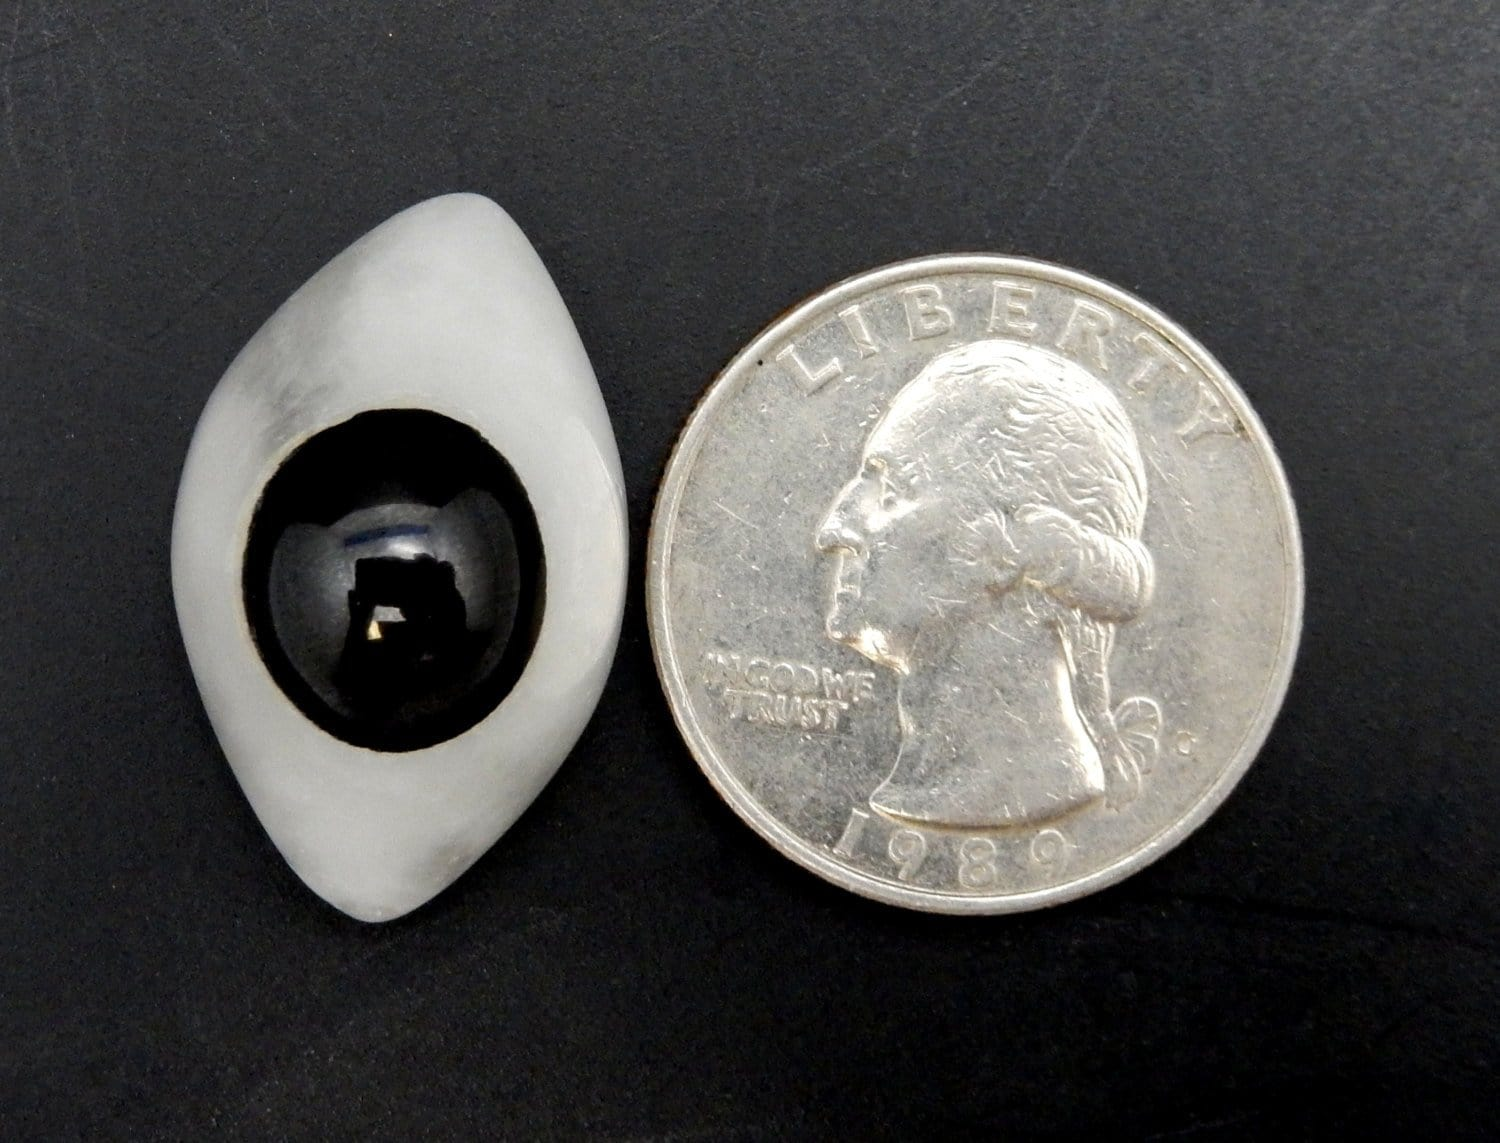 Cabochon - Shiva's Third Eye Cabochon- Shiva Third Eye Agate - White Shiva Lingum - Lord Shiva - Chakra - Metaphysical